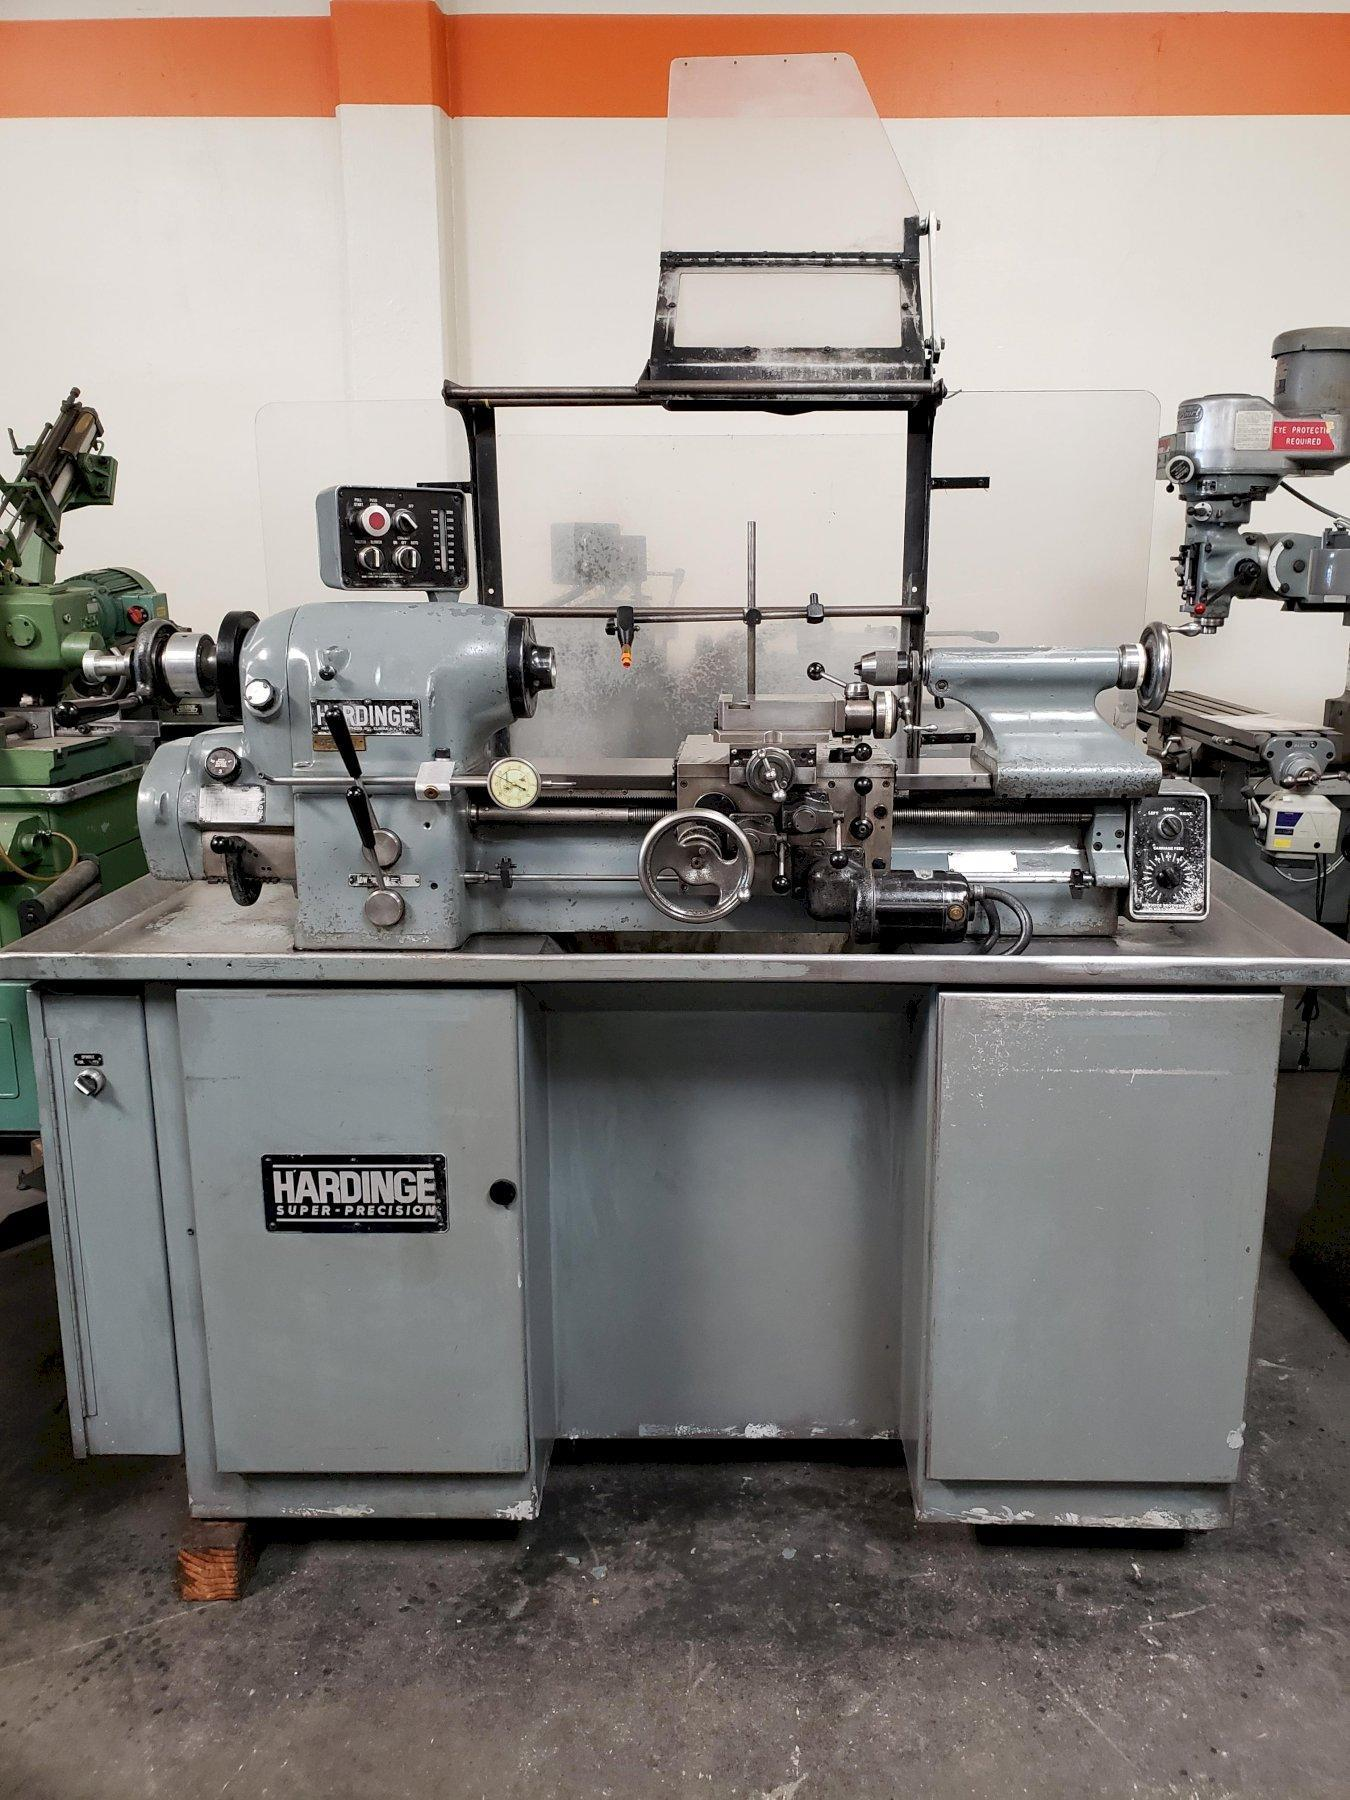 Hardinge HLV-H High Speed Tool Room Lathe with: Tool Post, Tailstock, Collet Nose, and Splash Guard.